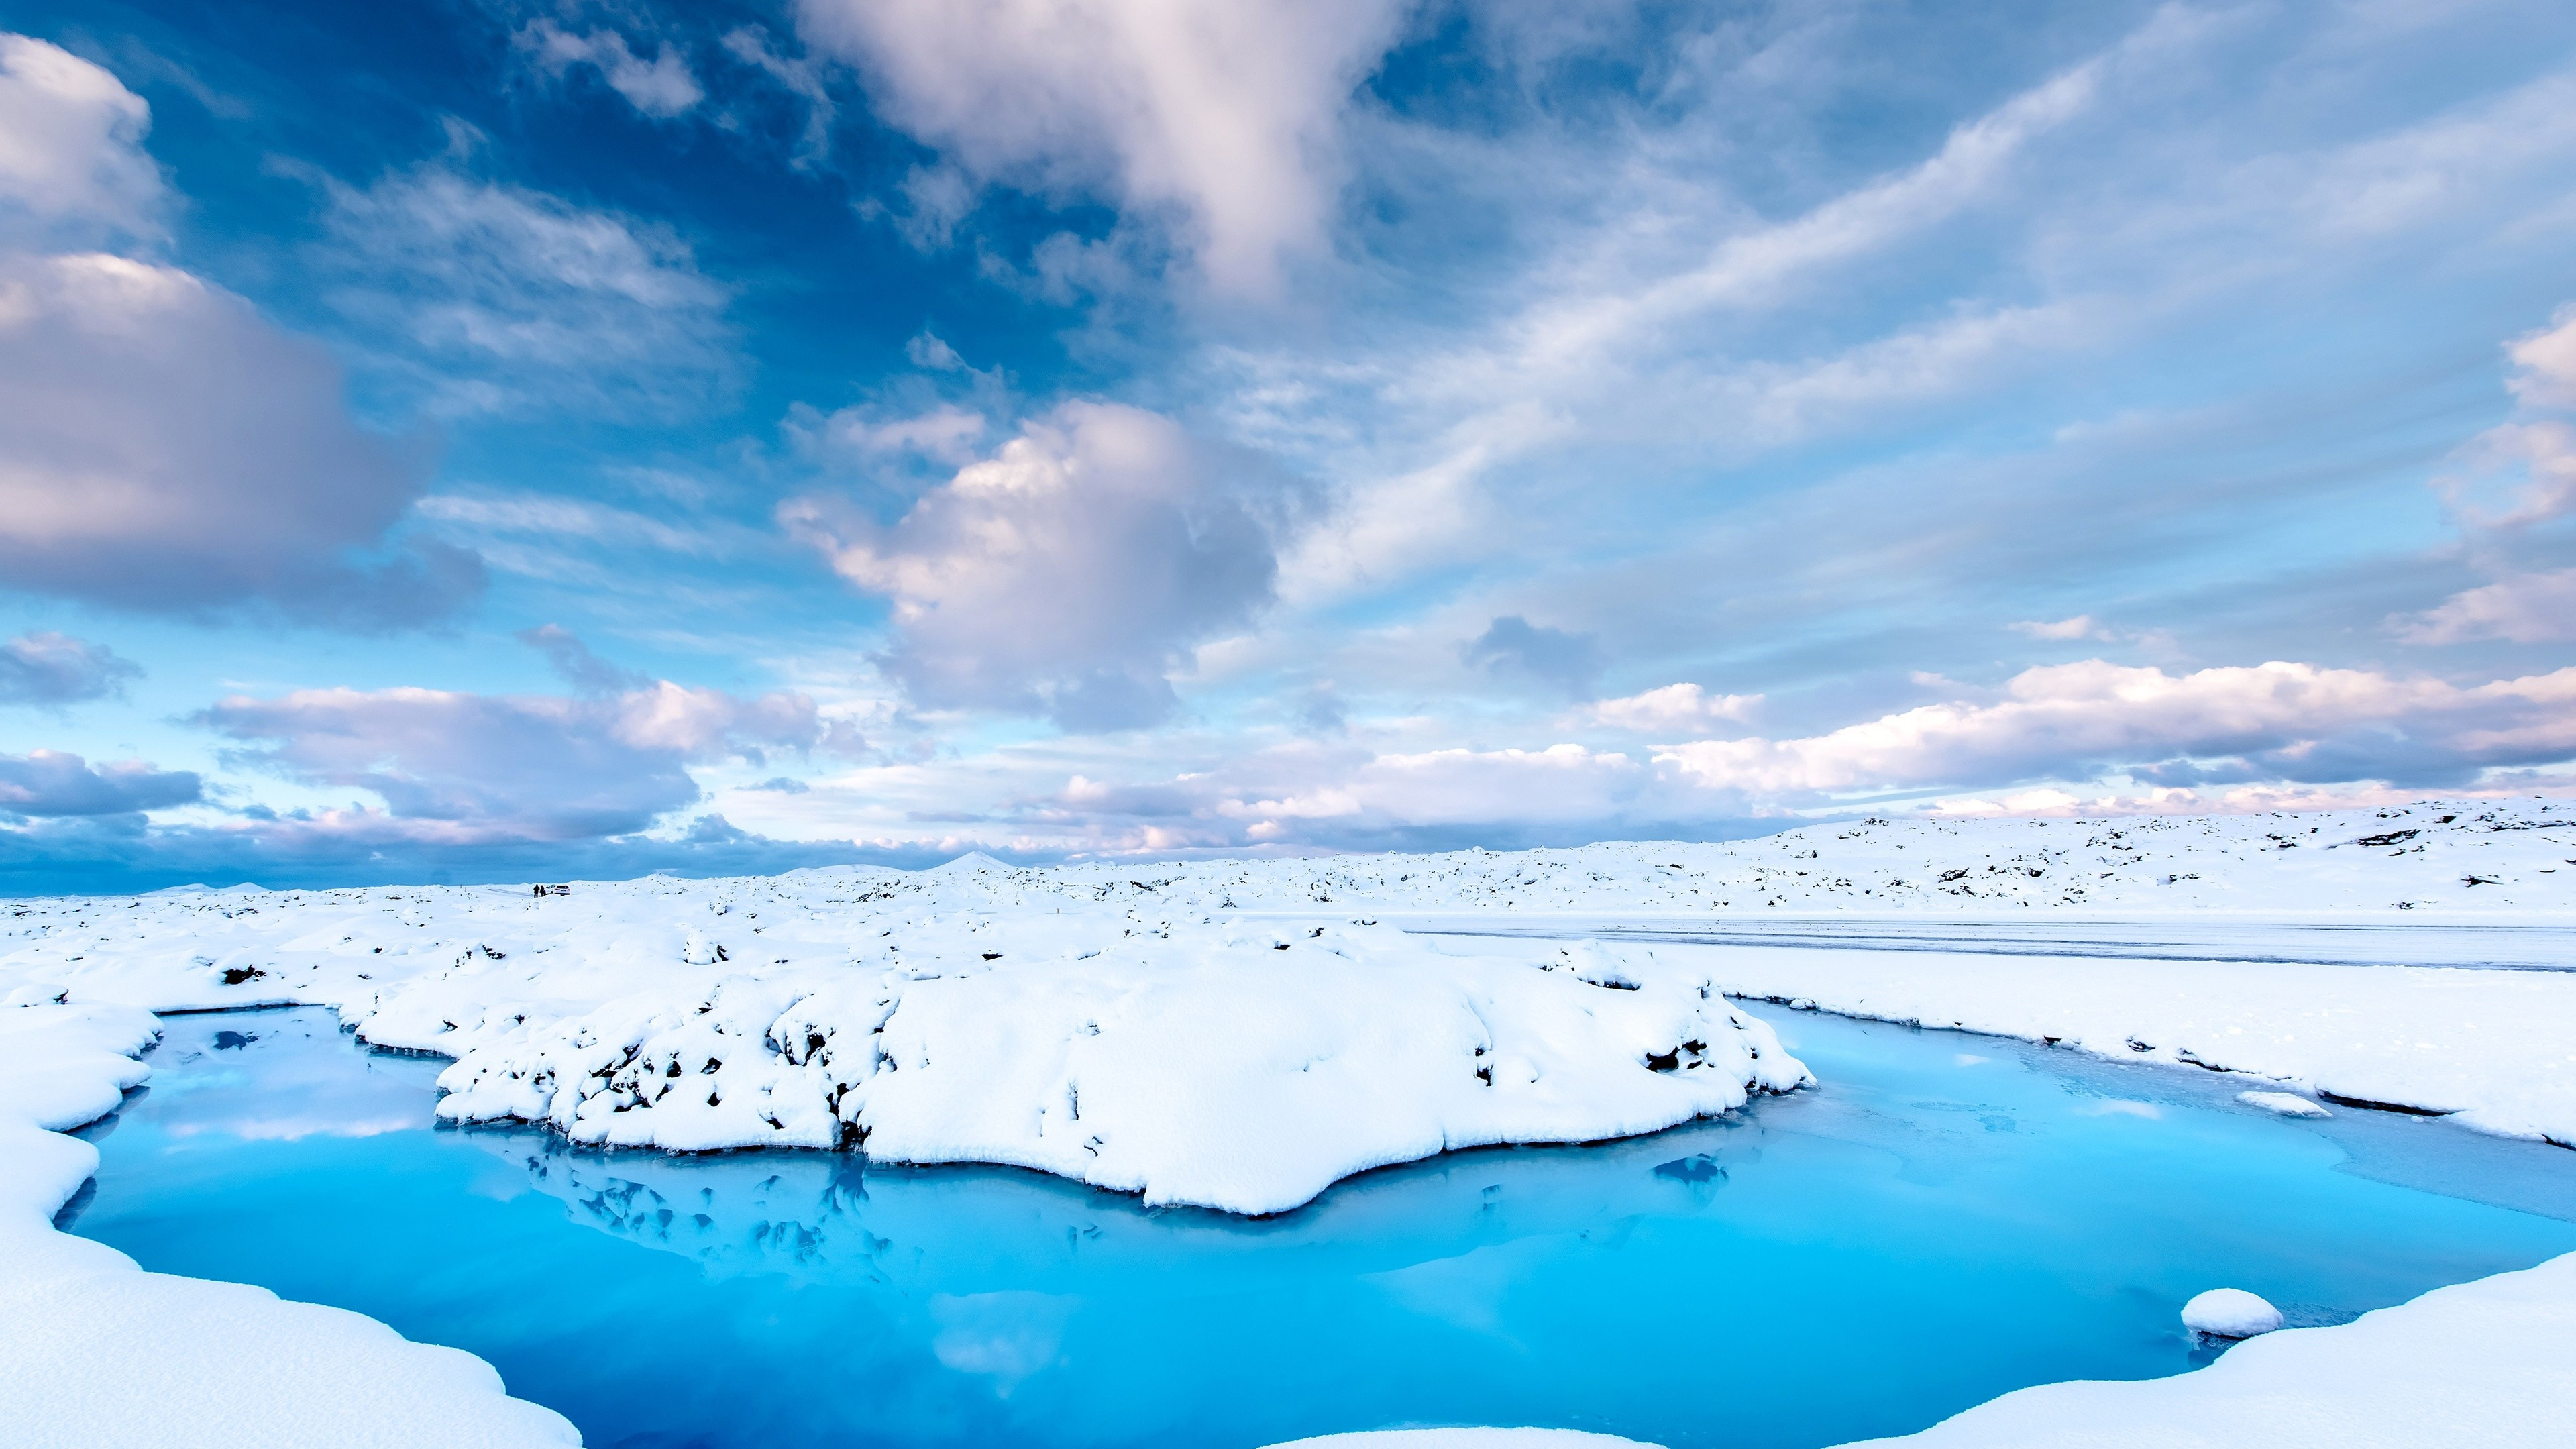 snow in water iceland clouds clear sky 4k 1540138428 - Snow In Water Iceland Clouds Clear Sky 4k - winter wallpapers, water wallpapers, snow wallpapers, sky wallpapers, hd-wallpapers, clouds wallpapers, 4k-wallpapers